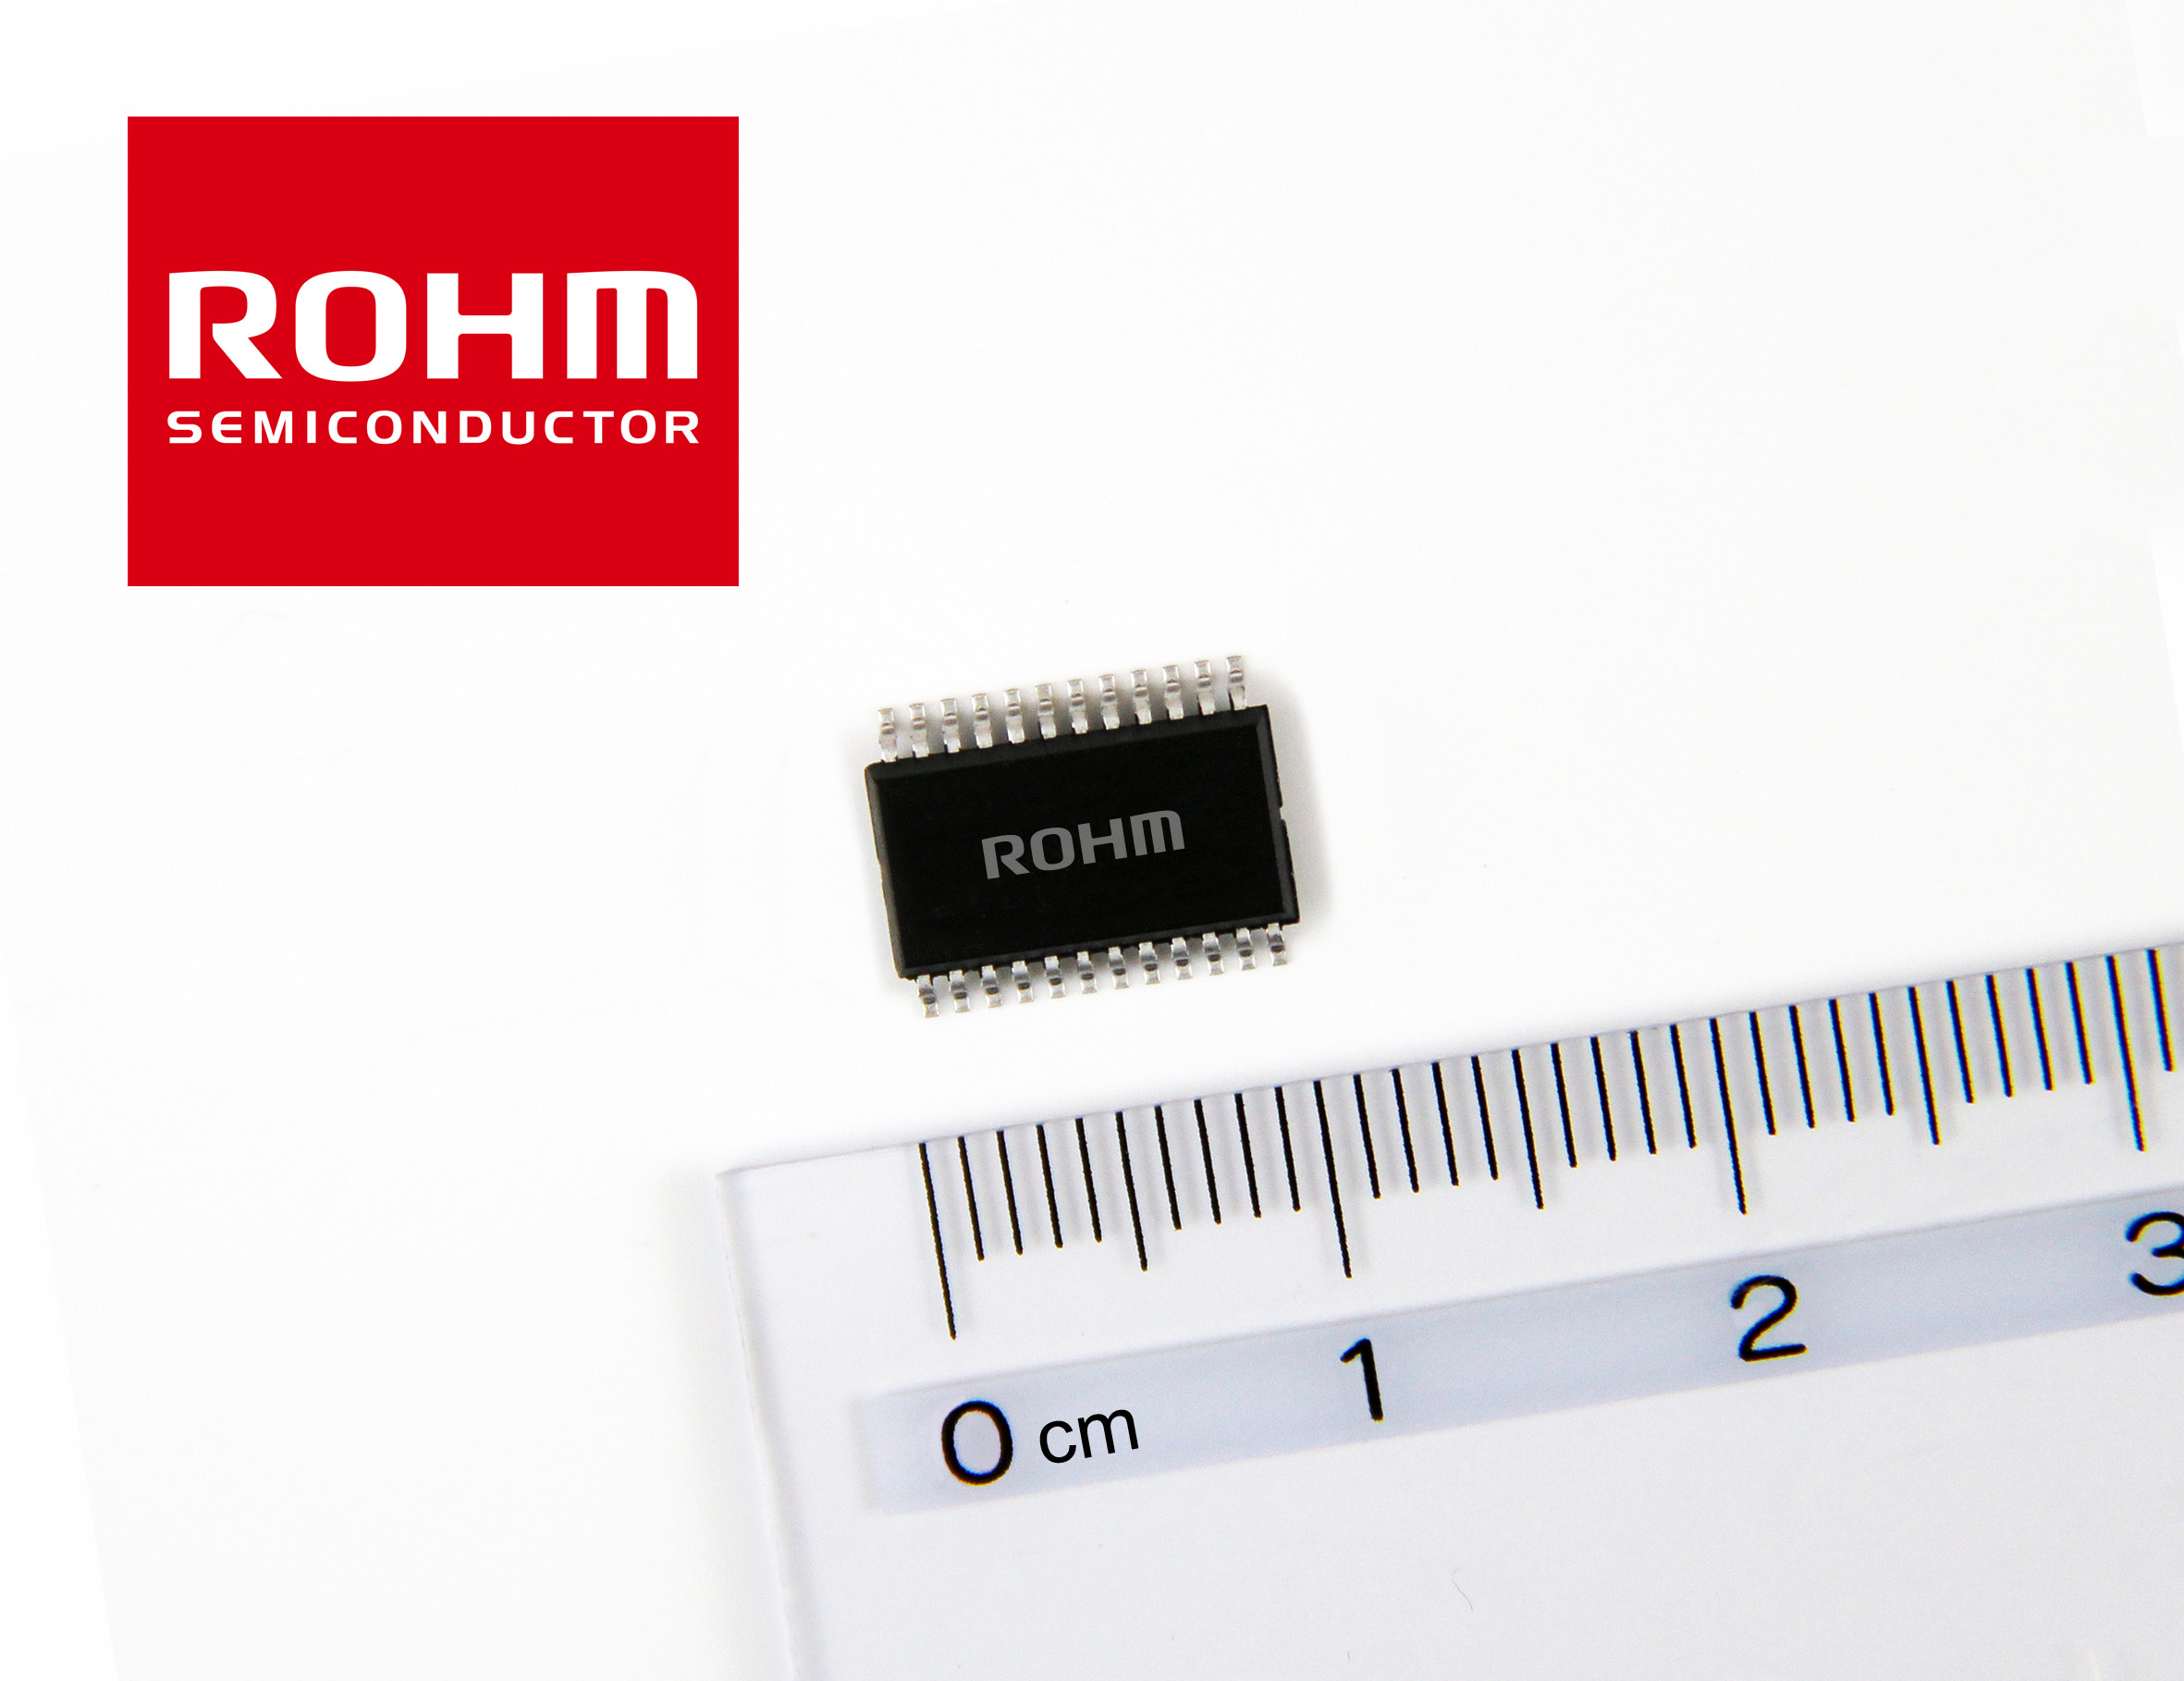 Rohm Develops New Sound Processor for Hi-Fidelity Car Audio and Navigation Systems